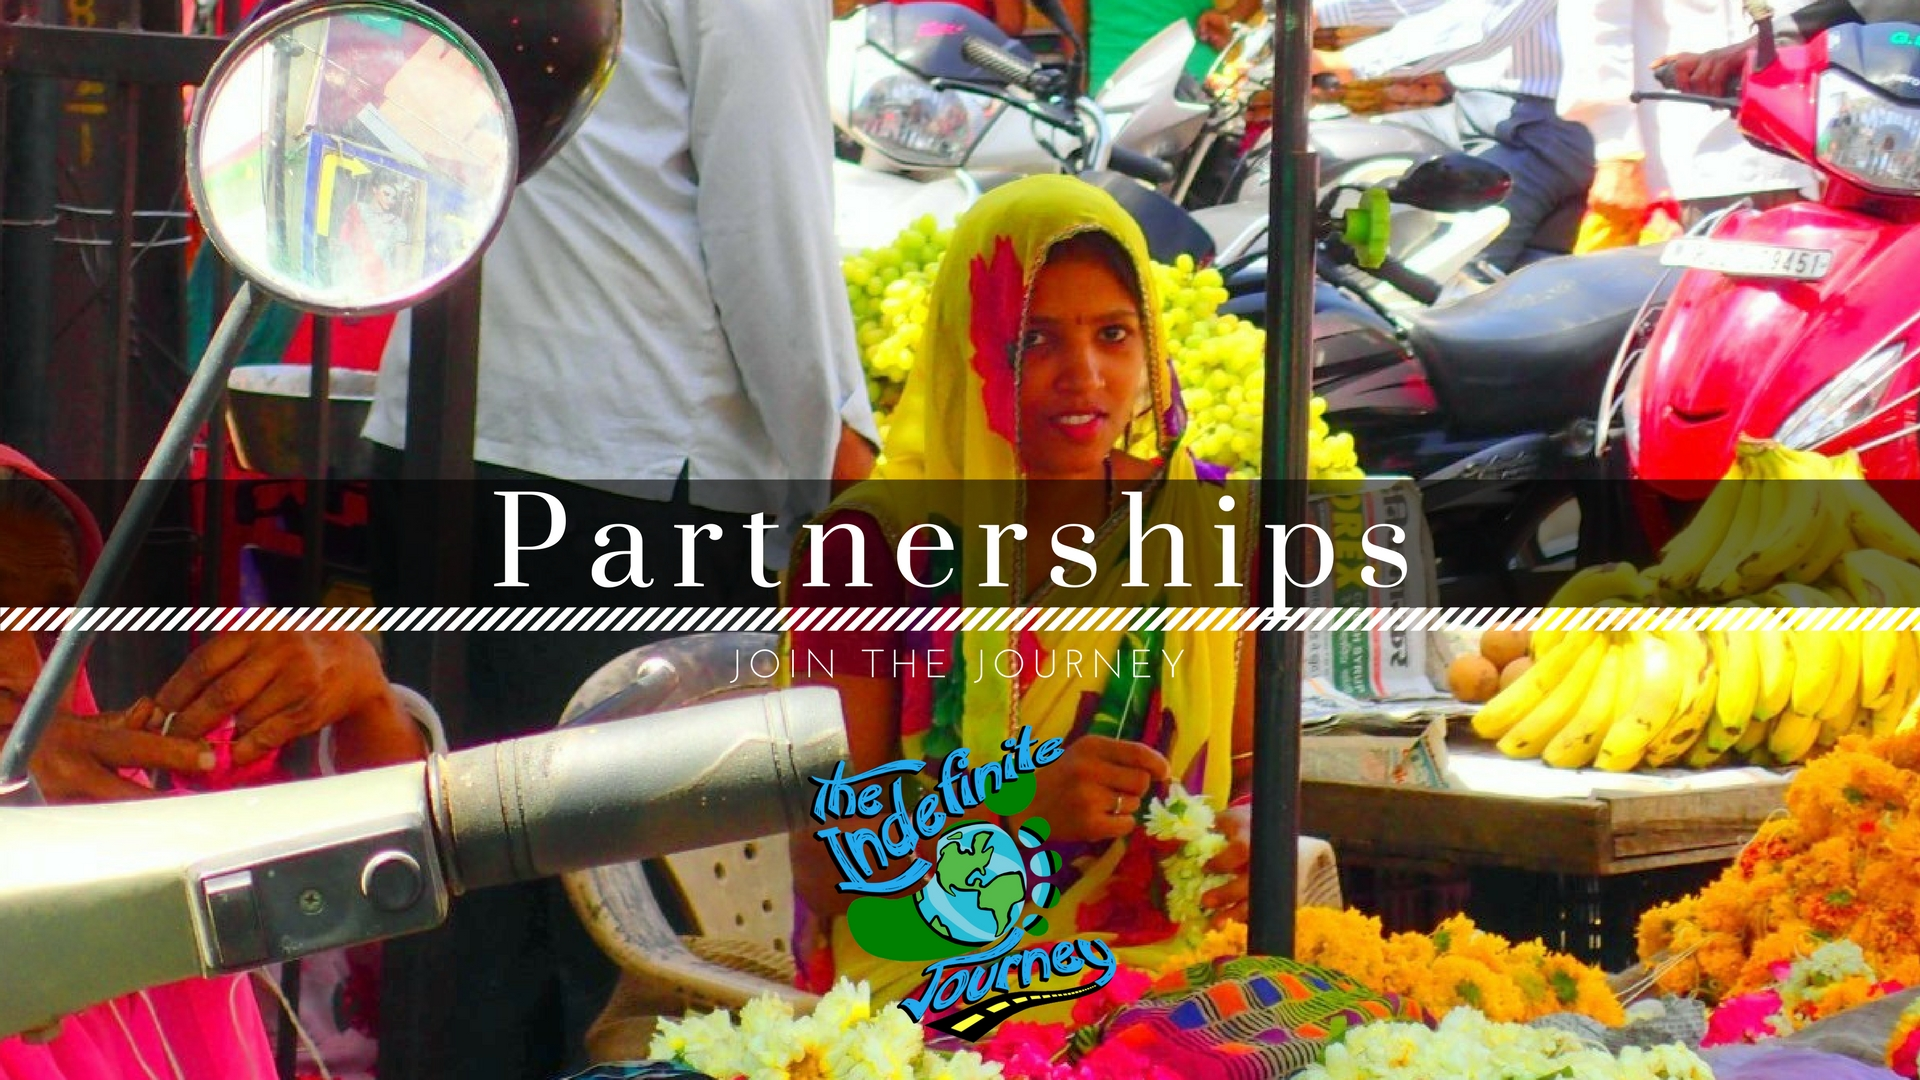 Partnerships - The Indefinite Journey